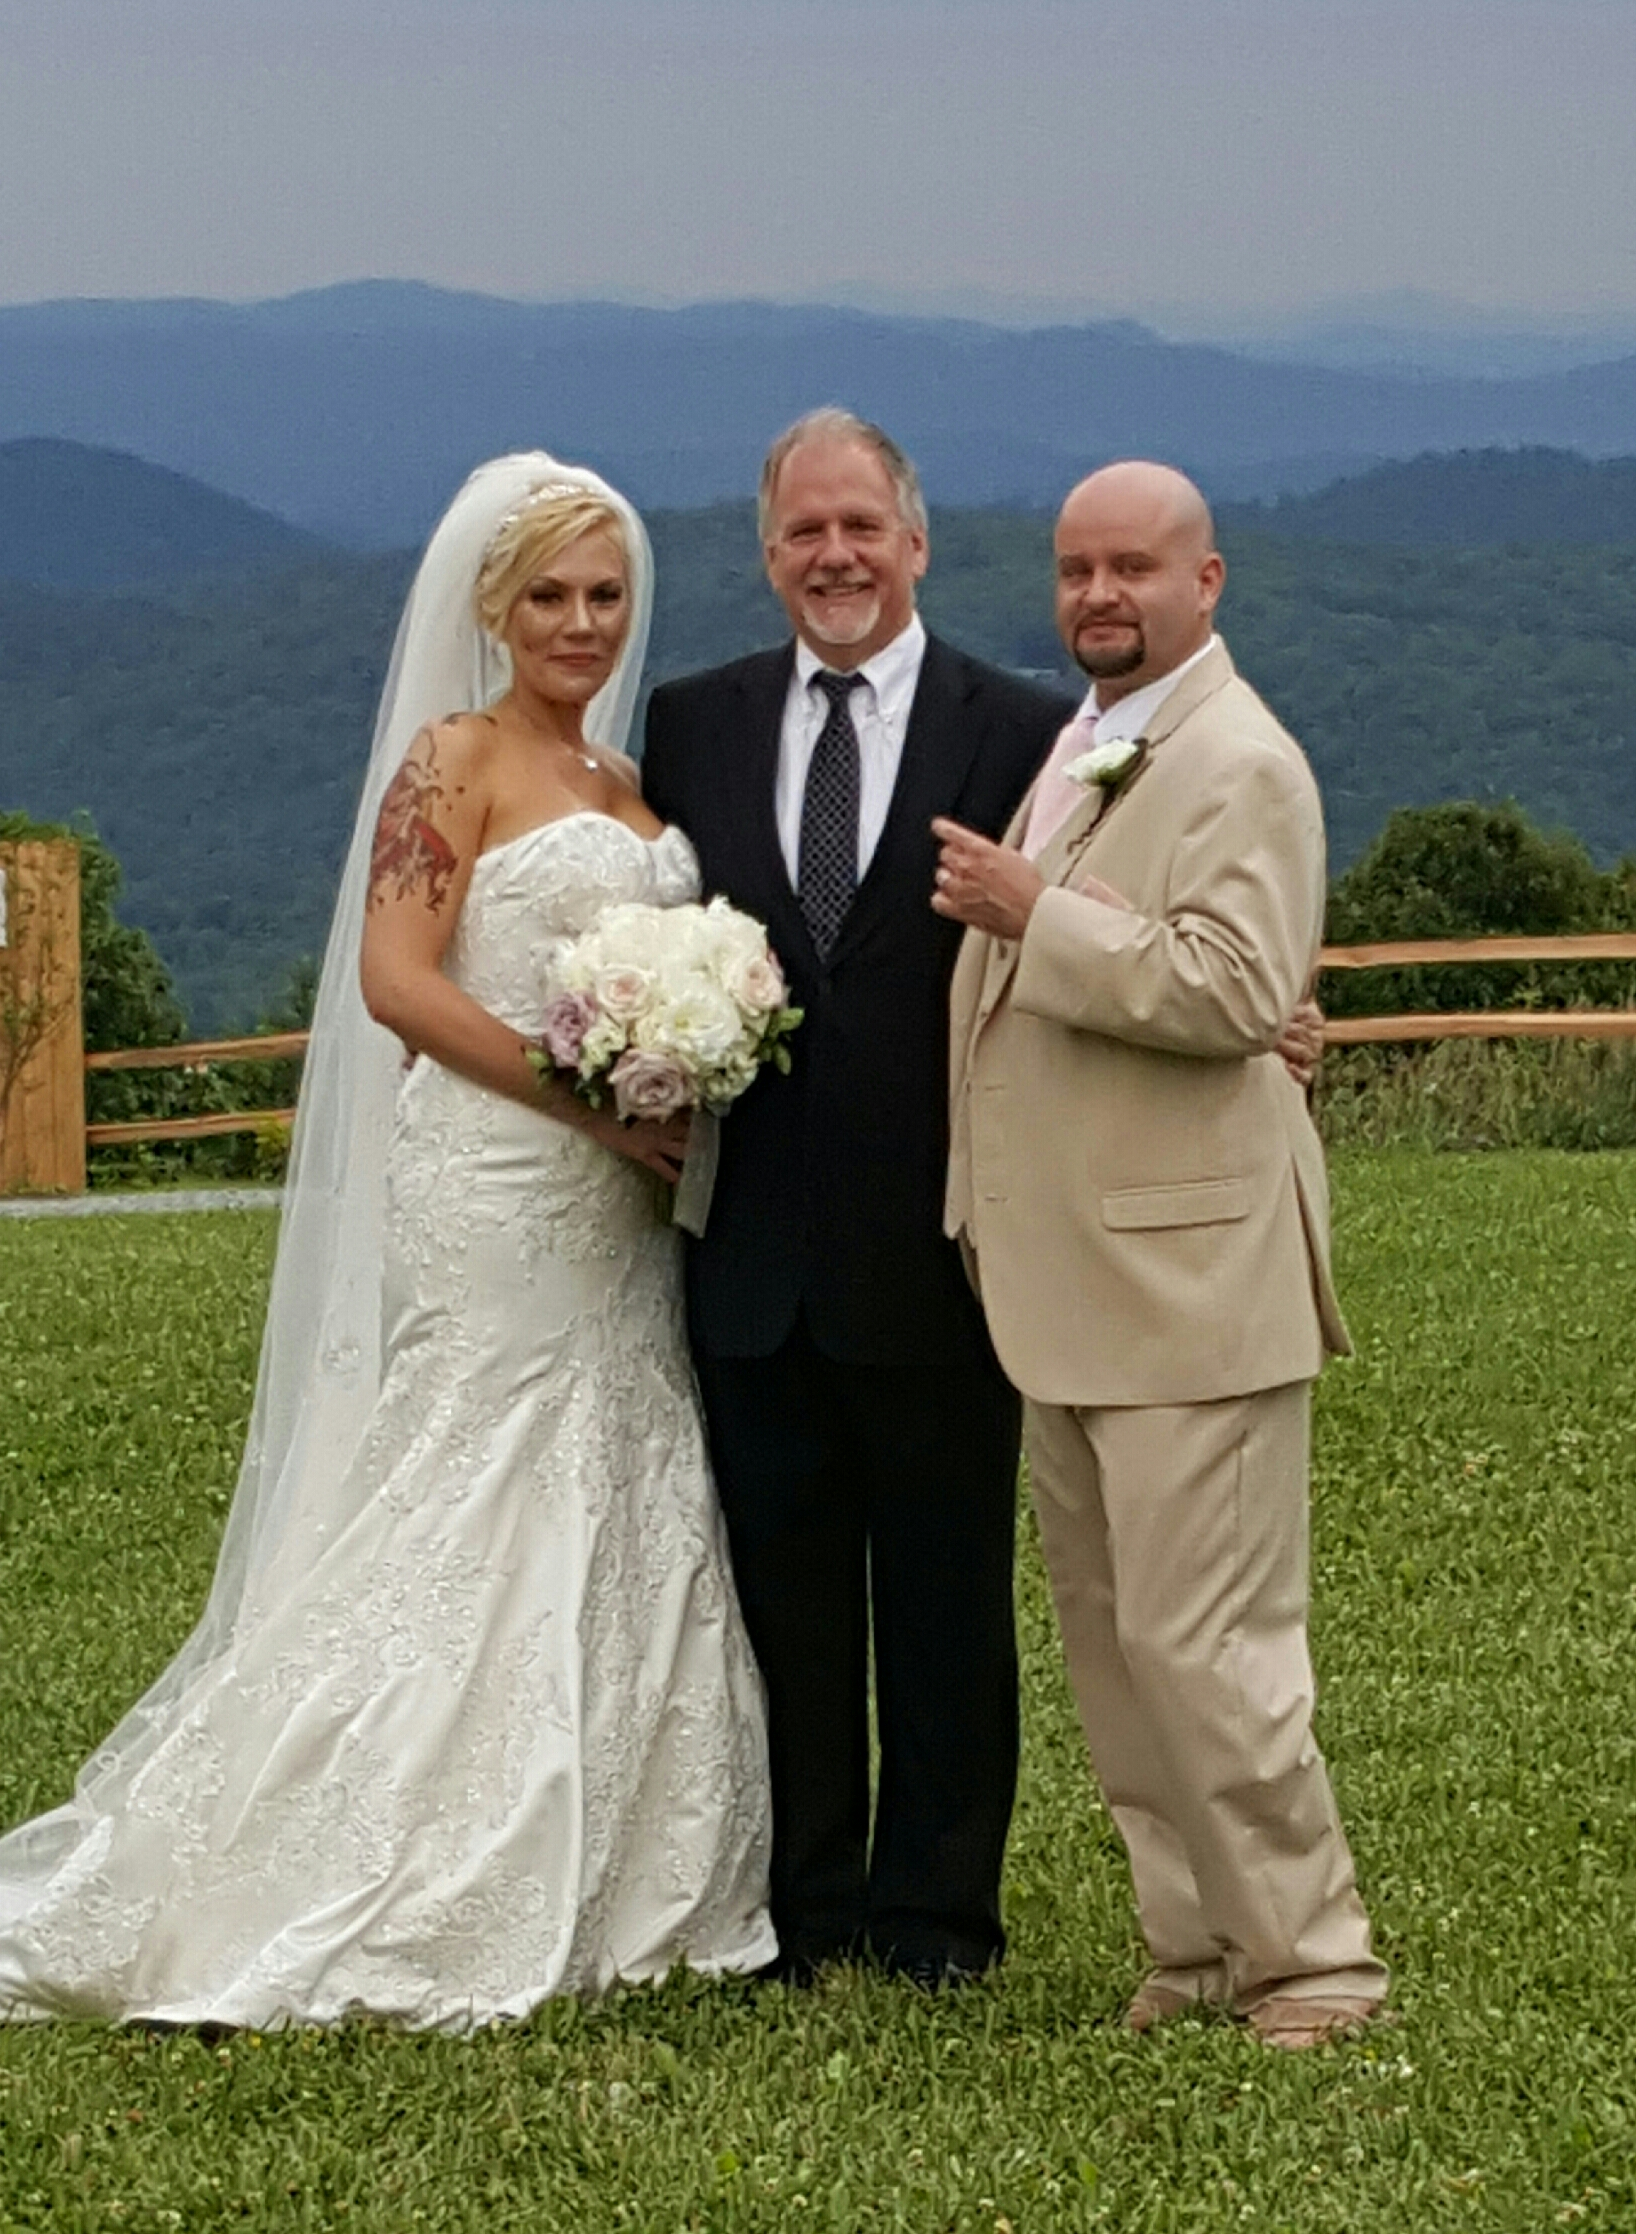 NC Wedding Officiant